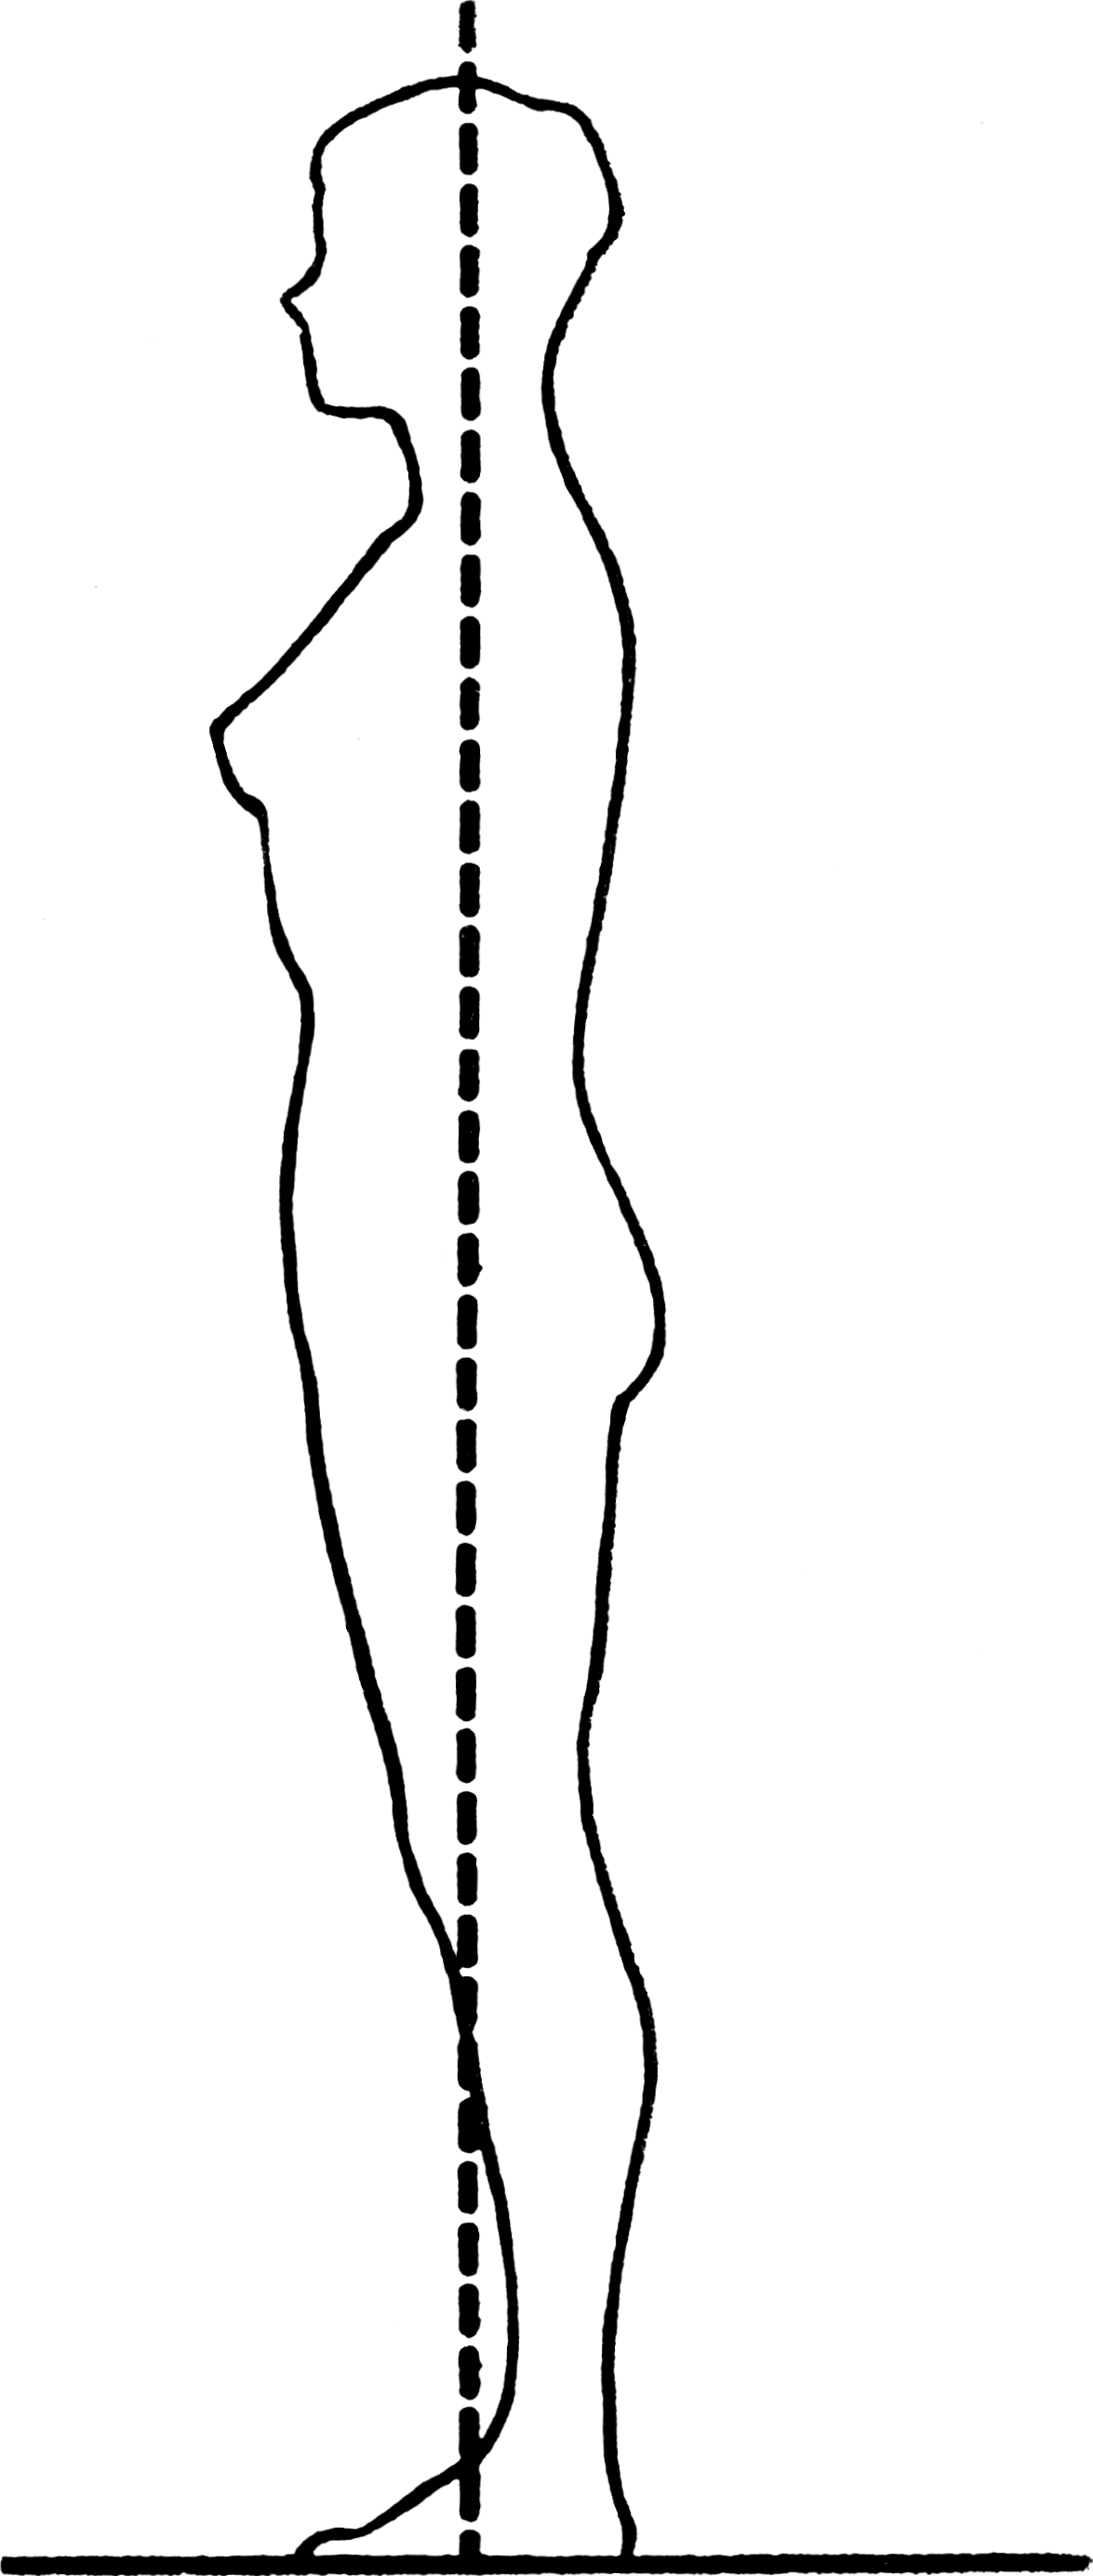 Drawing showing proper posture while standing.